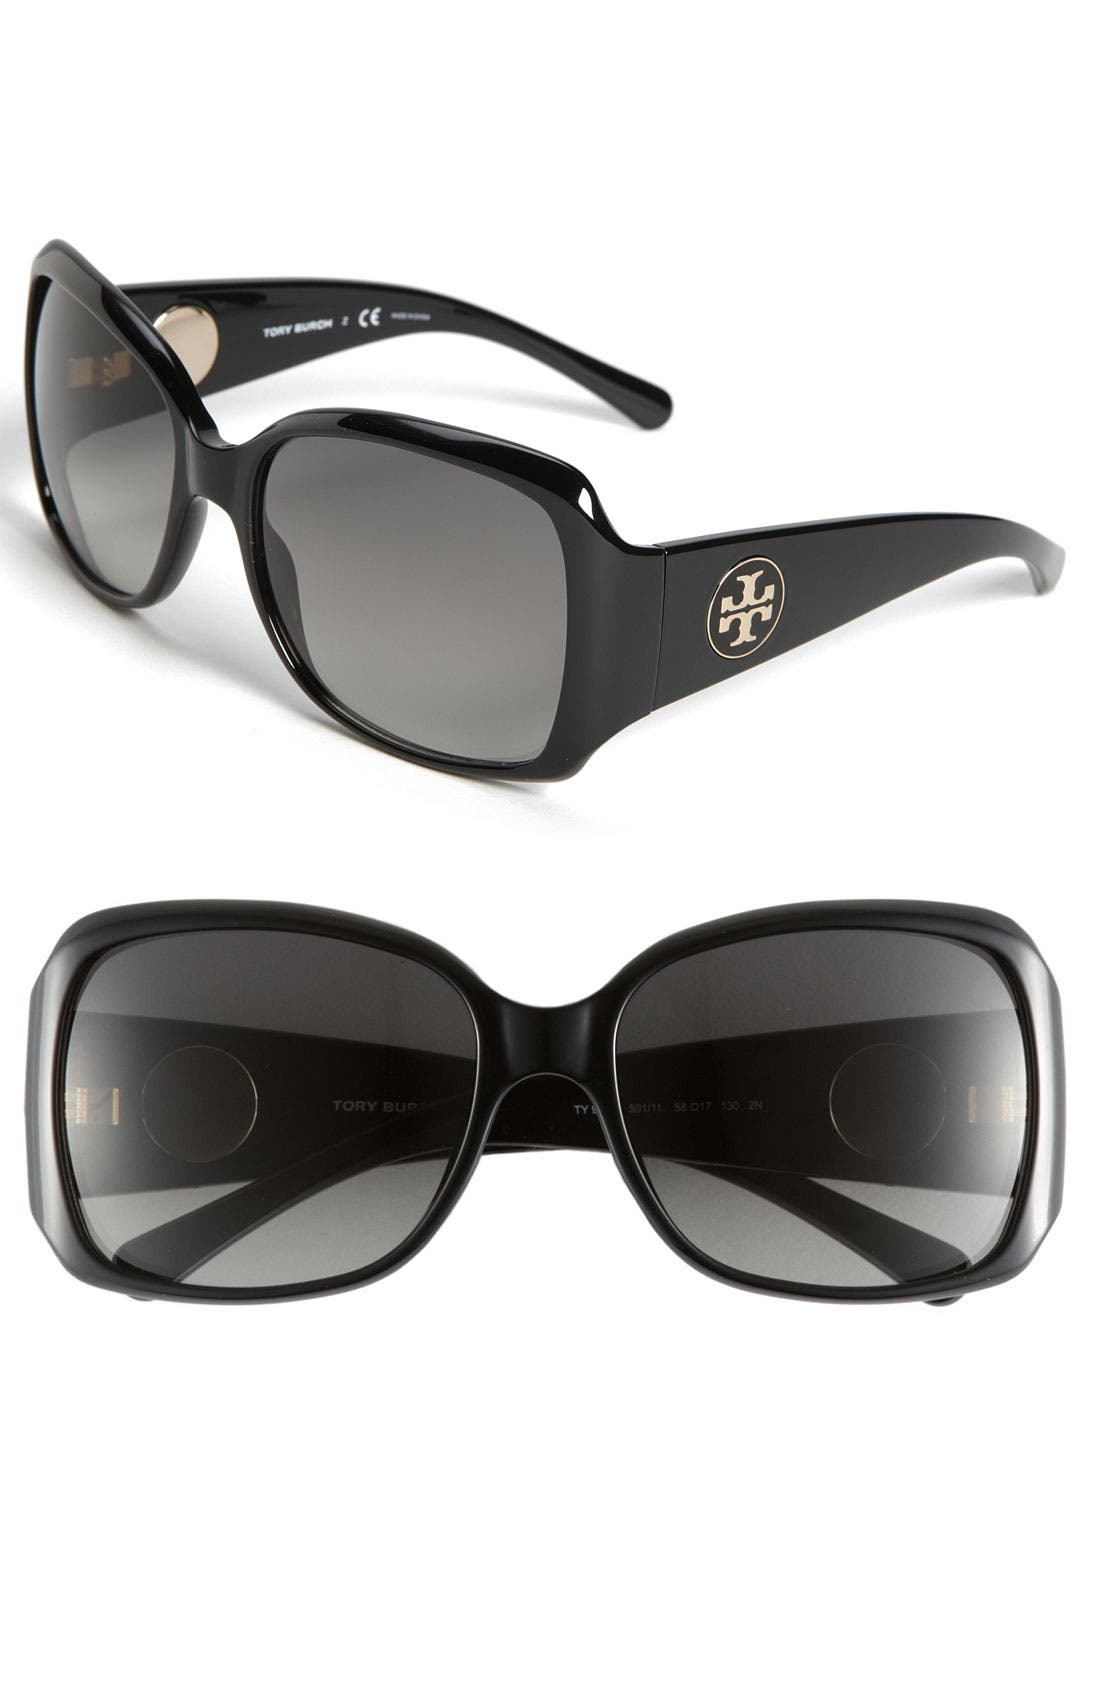 Main Image - Tory Burch 58mm Square Sunglasses